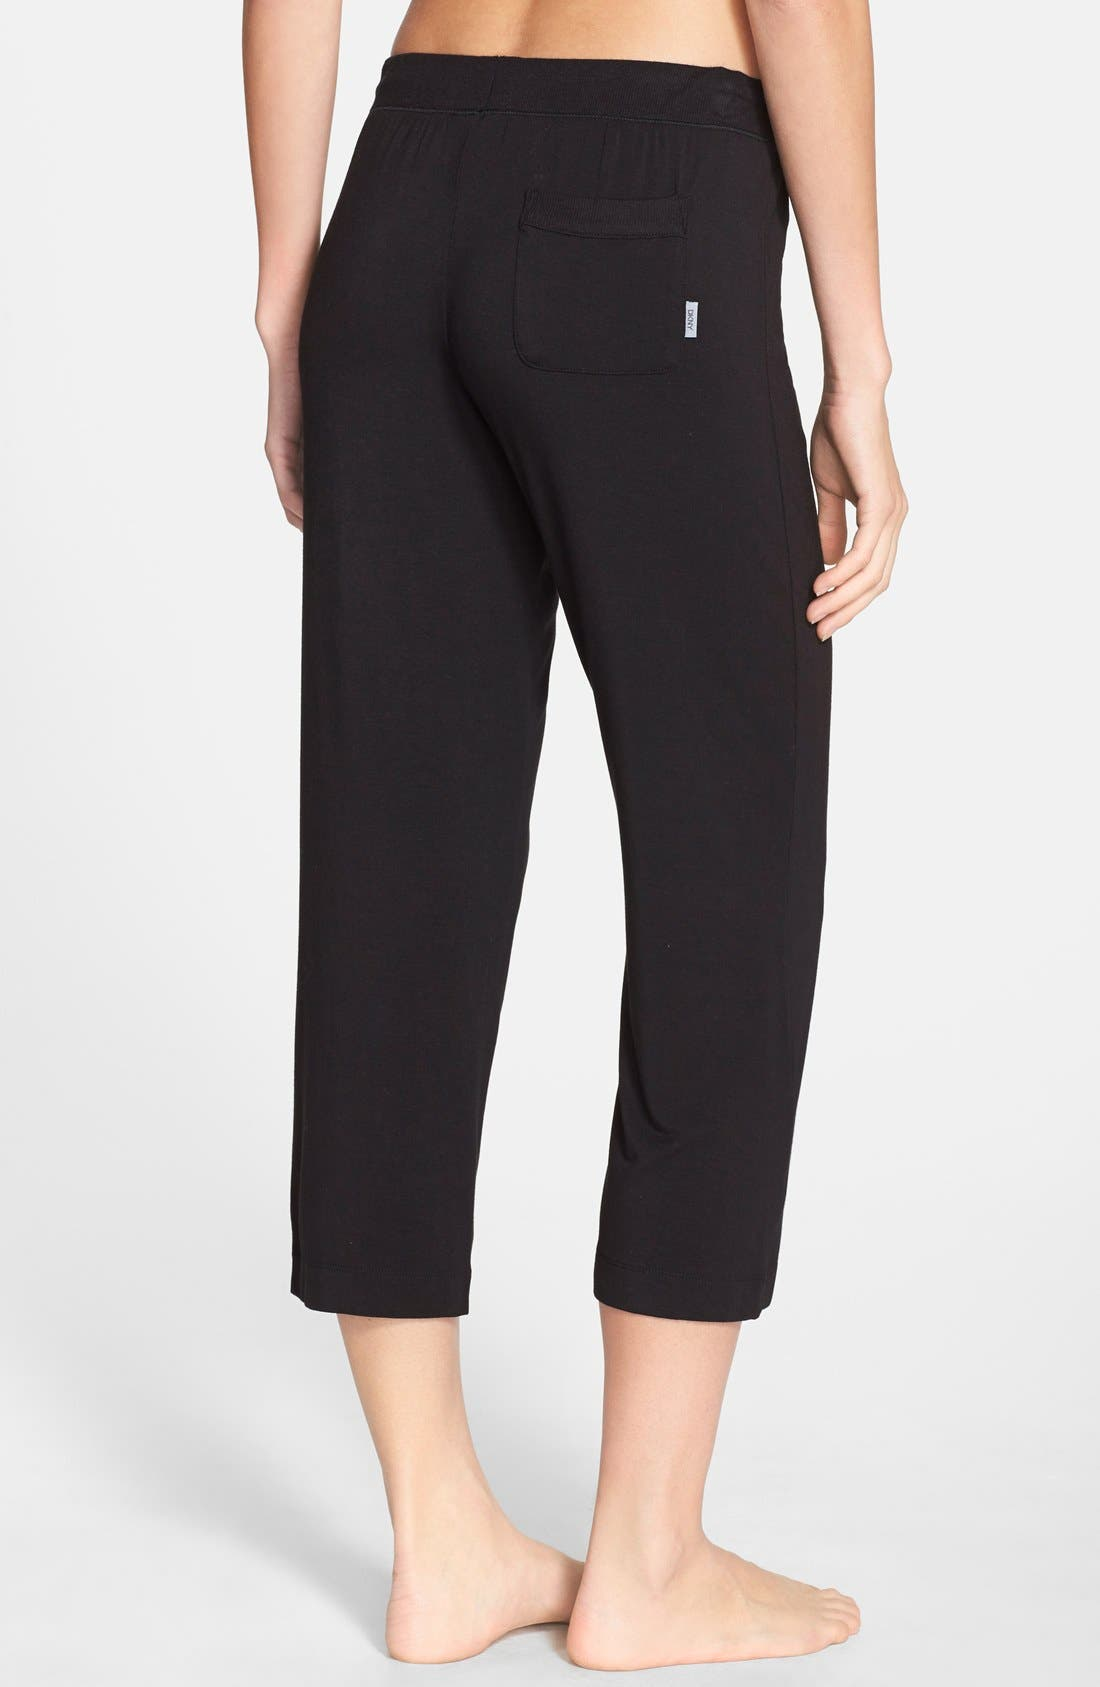 Alternate Image 2  - DKNY 'Urban Essentials' Capri Pants